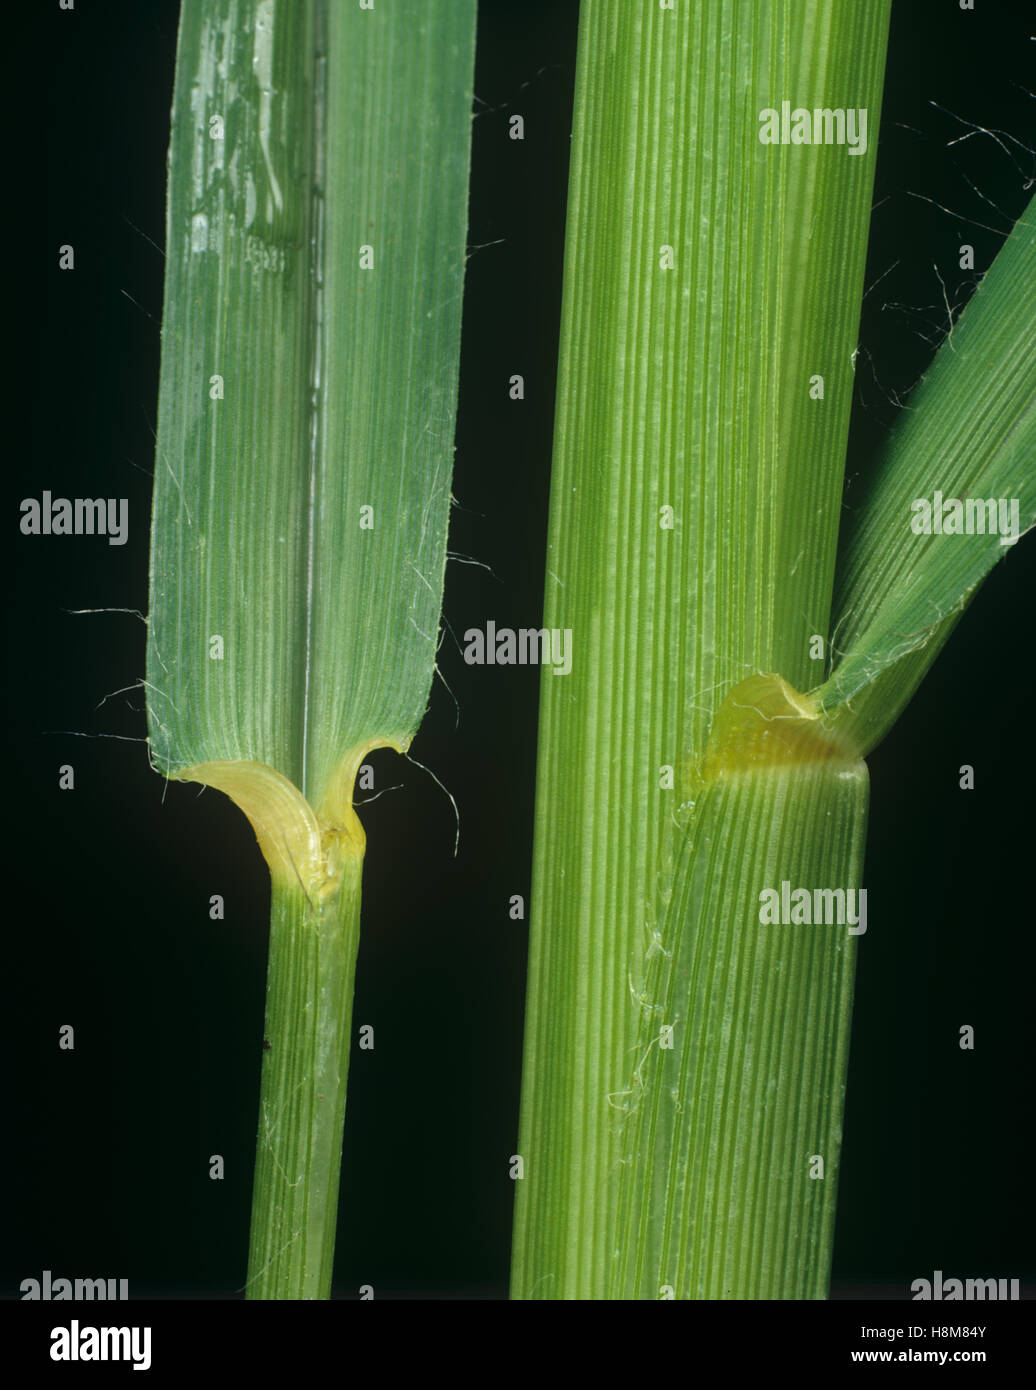 Crowfoot grass or goosegrass, Eleusine indica, leaf ligule at the node and leafstalk of an agricultural grass weed - Stock Image